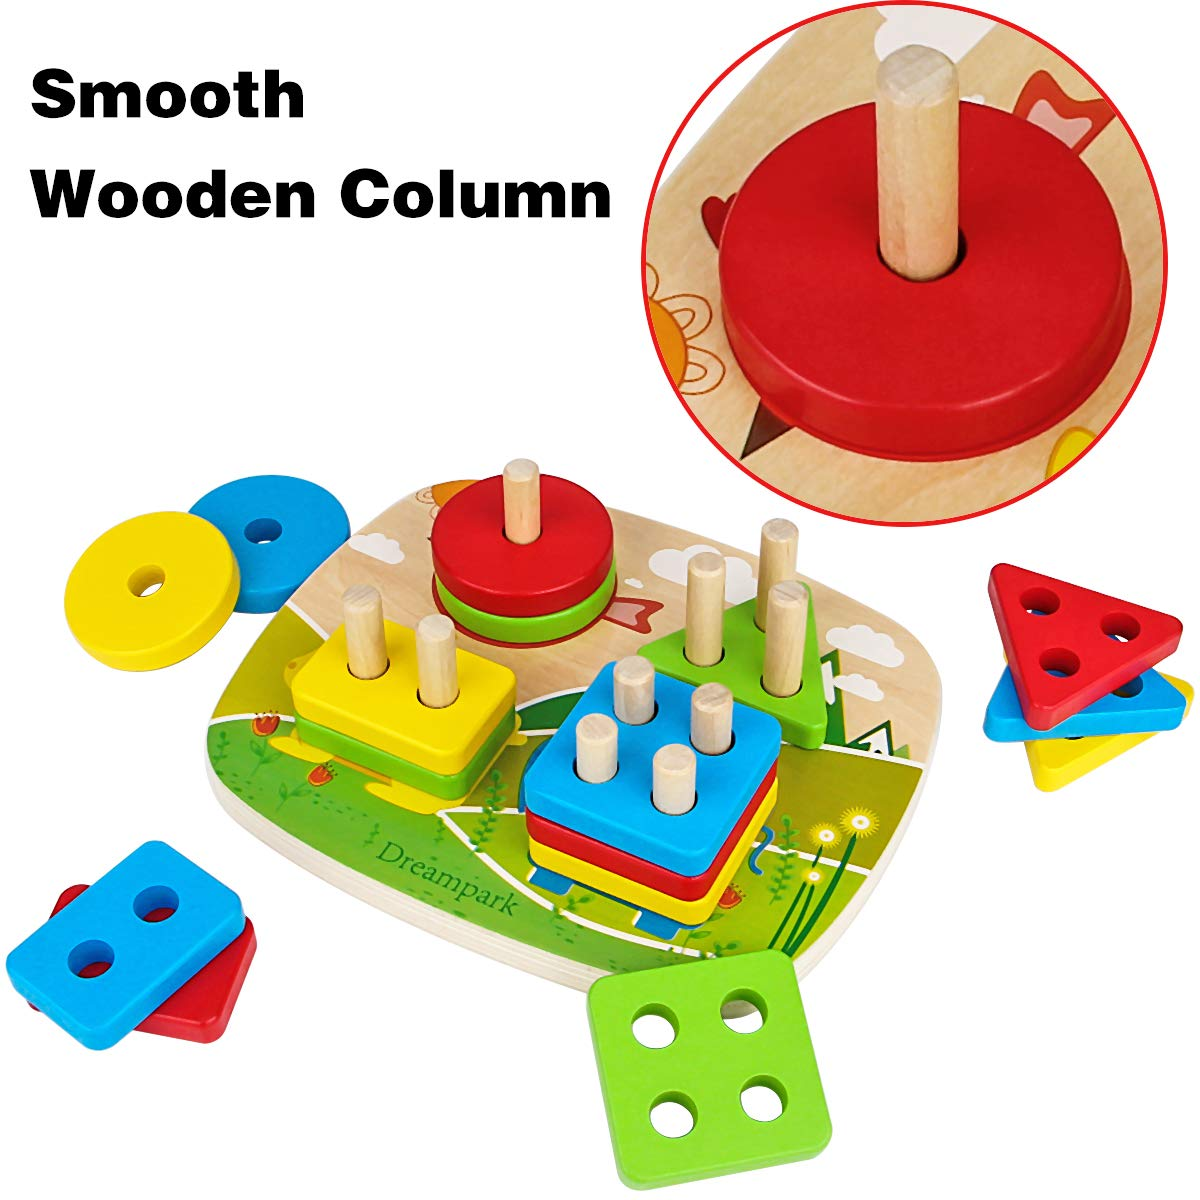 Wooden Shape Color Recognition Preschool Stack and Sort Geometric Board Blocks for Kids Children Non-Toxic Dreampark Educational Toddler Toys for Boys Girls Age 1 2 3 4 and Up